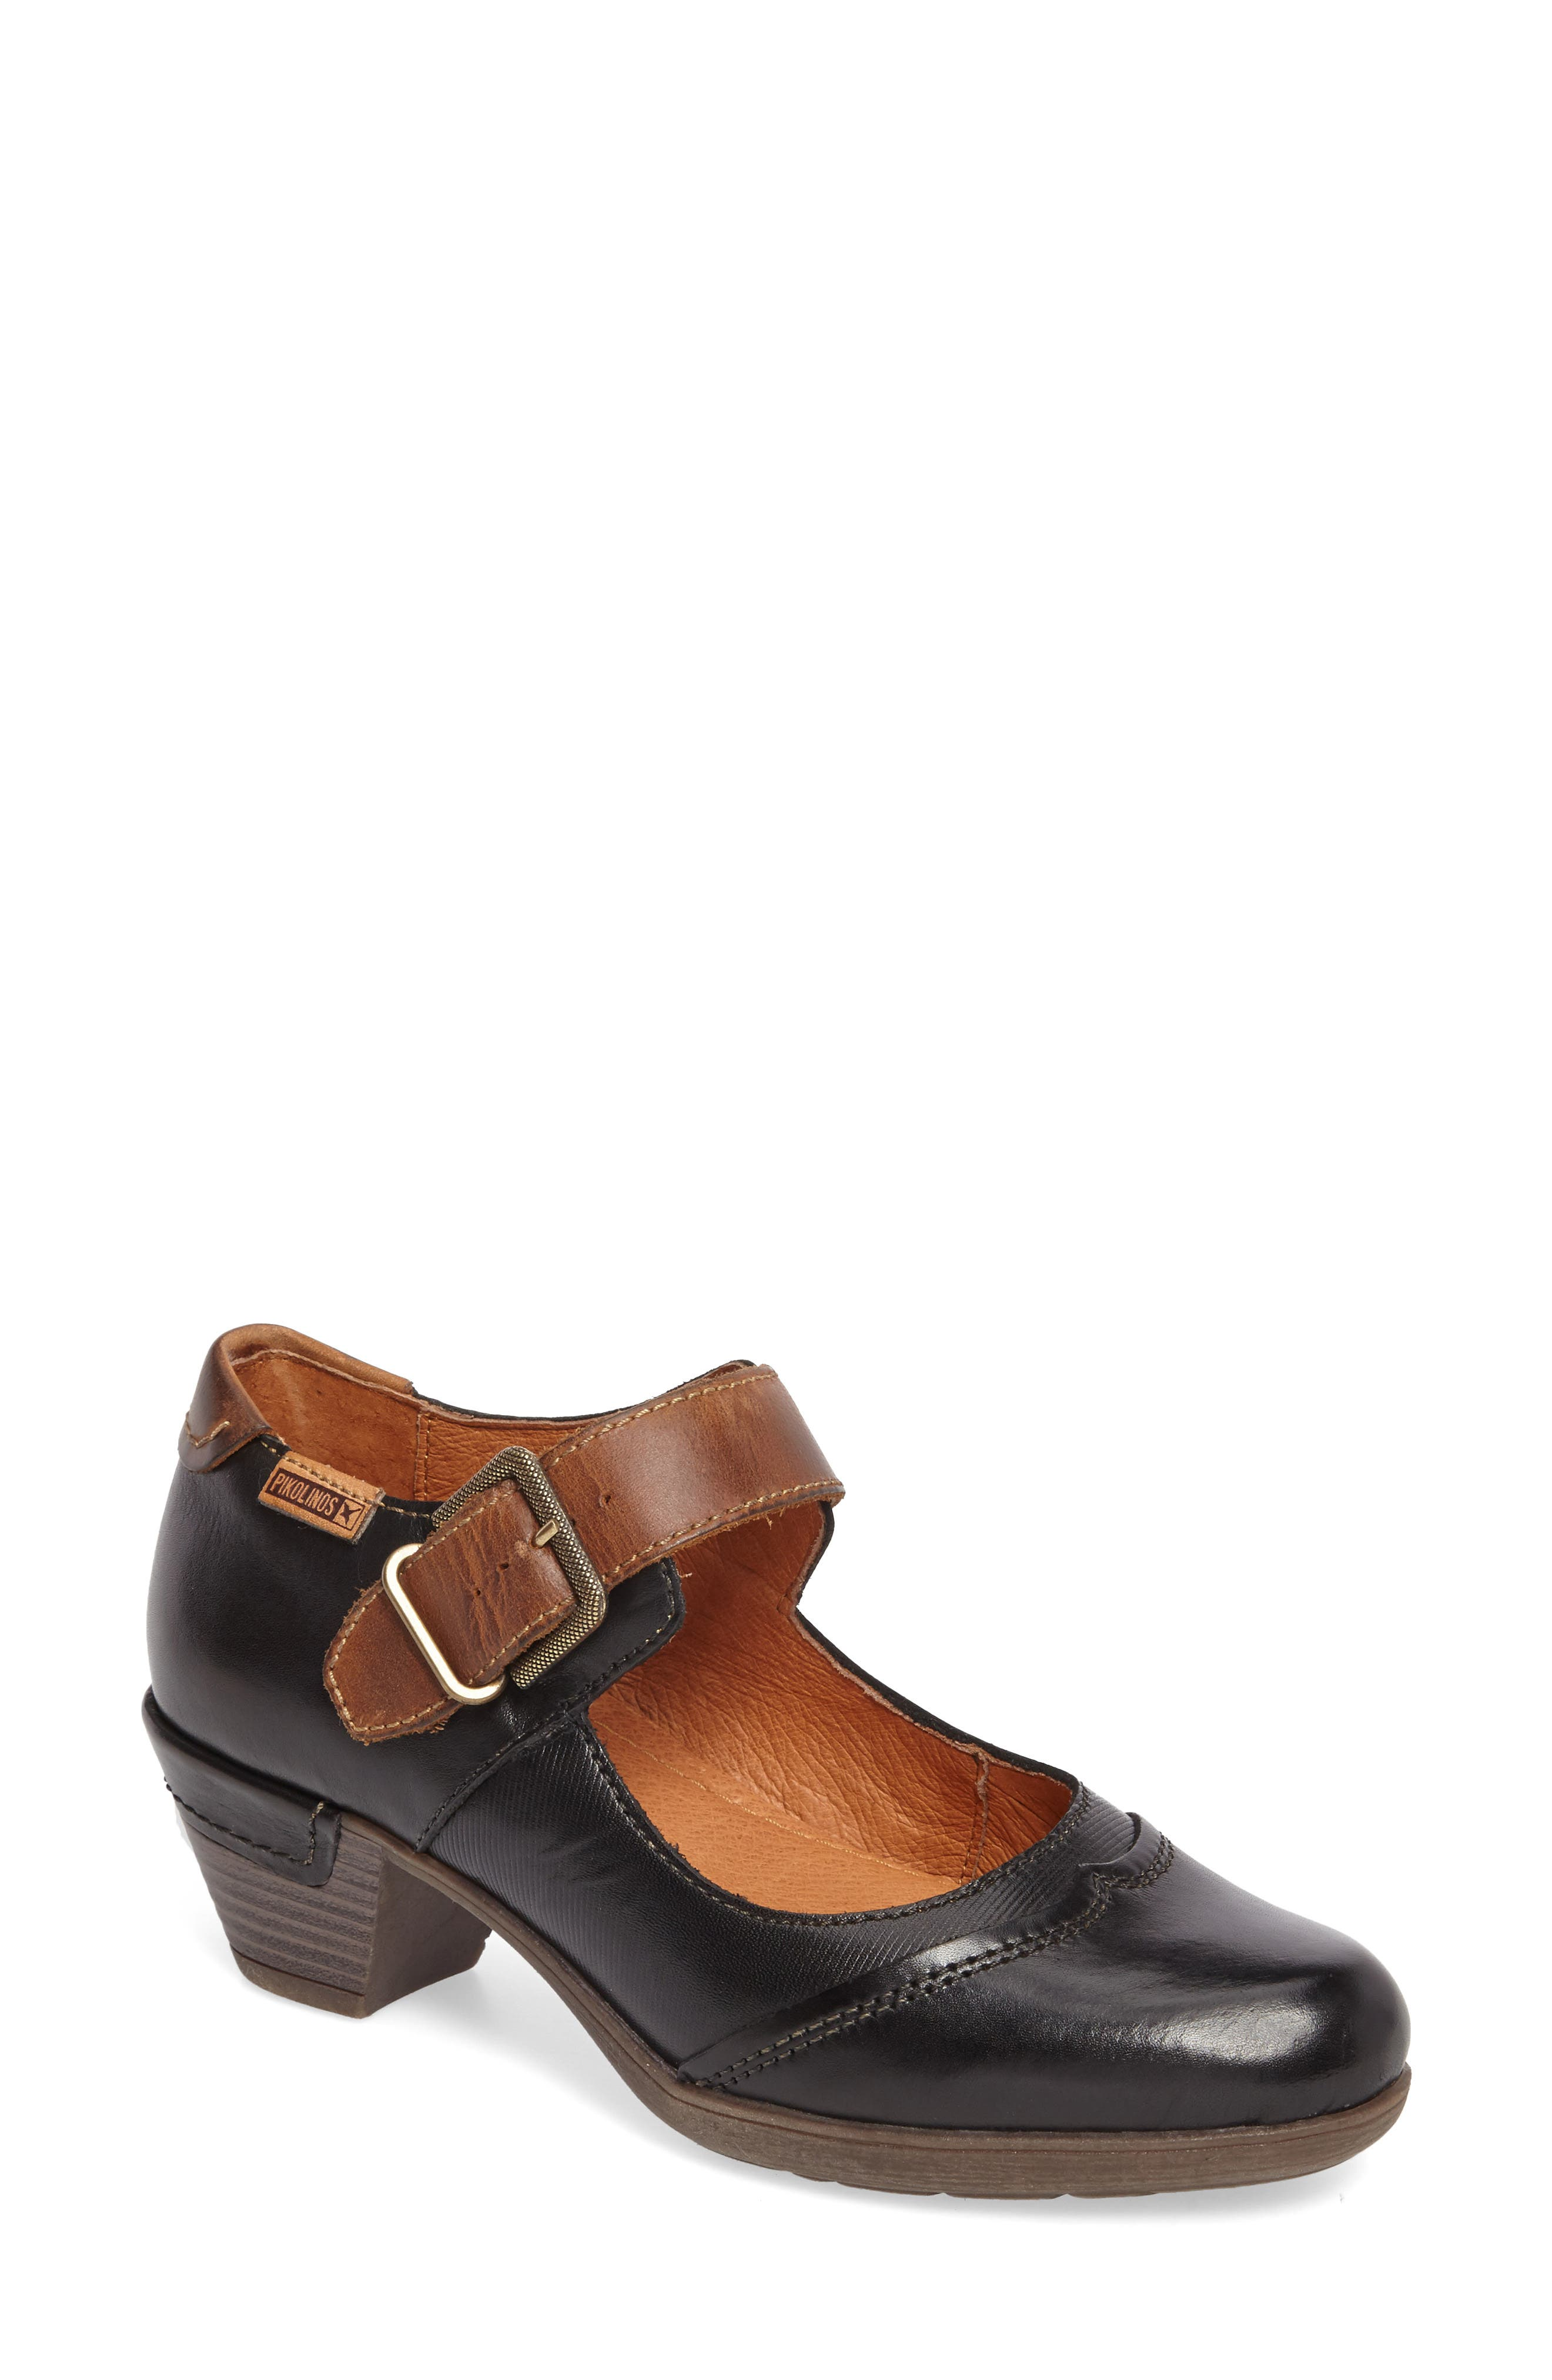 Rotterdam Water Resistant Mary Jane Pump,                         Main,                         color, Black Leather